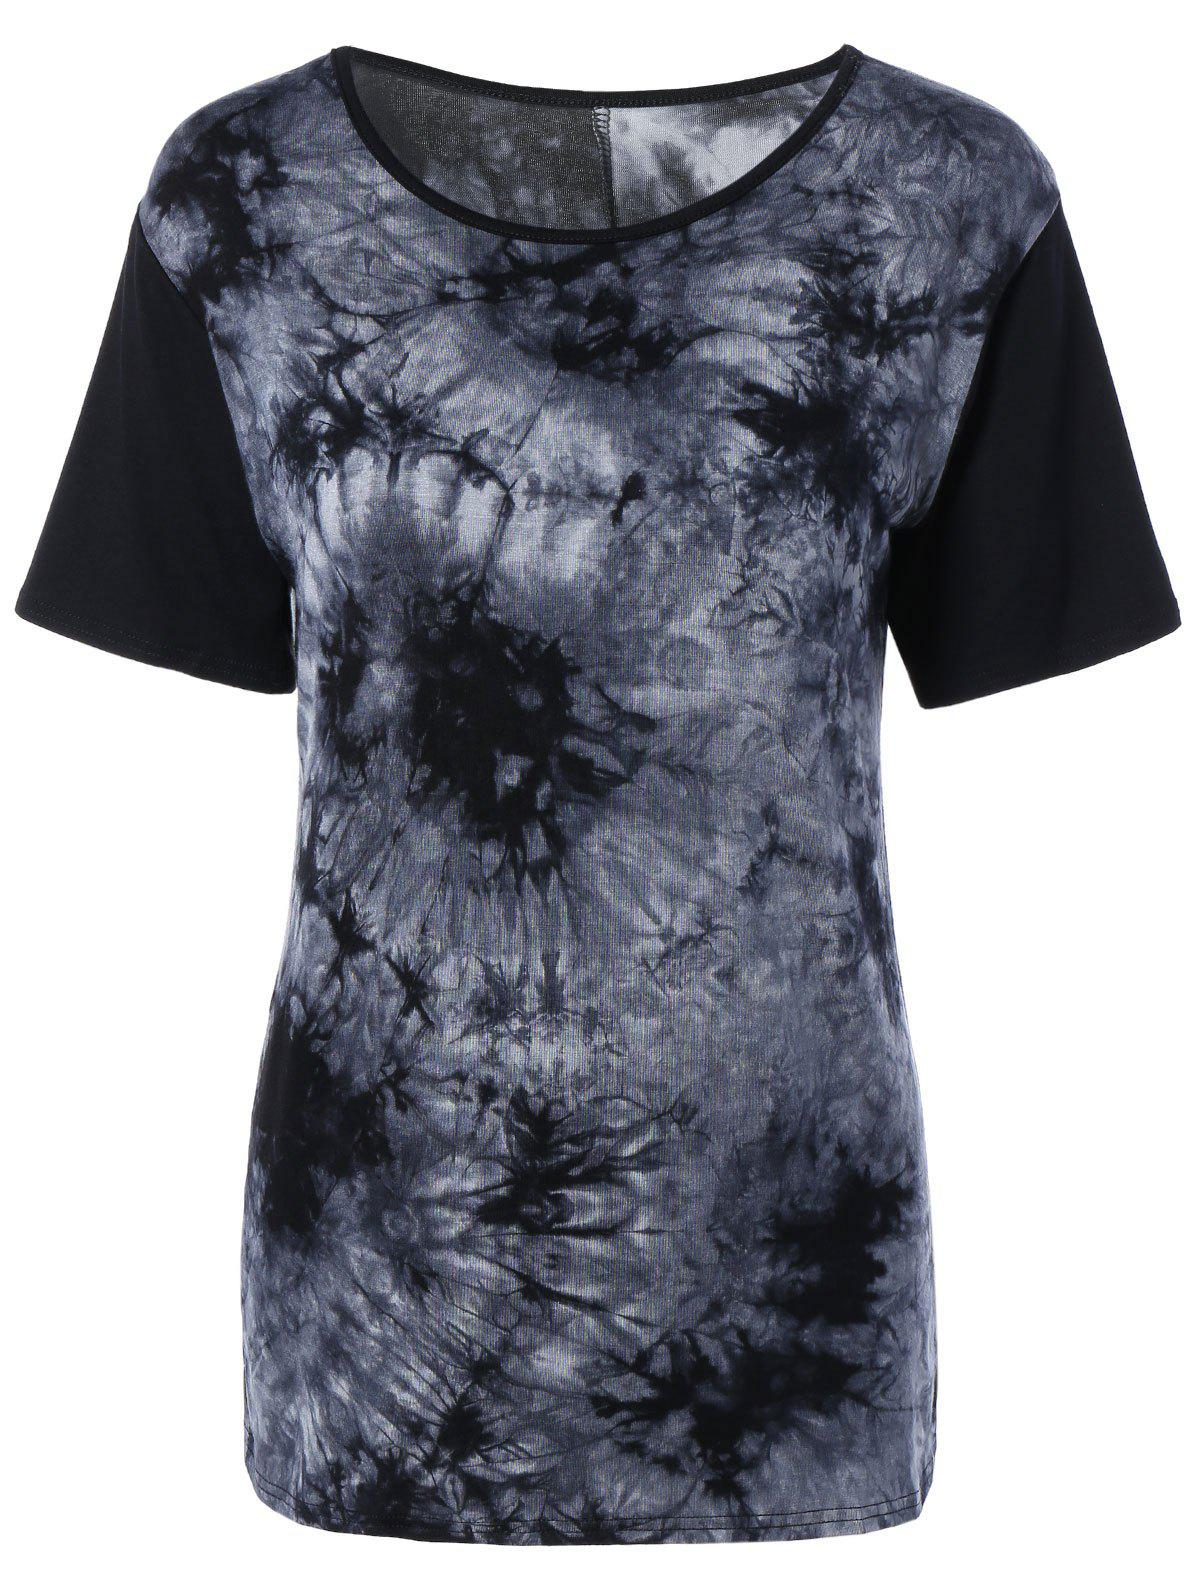 Elegant Tie Dye Print Comfortable Fitted T Shirt - BLACK XL